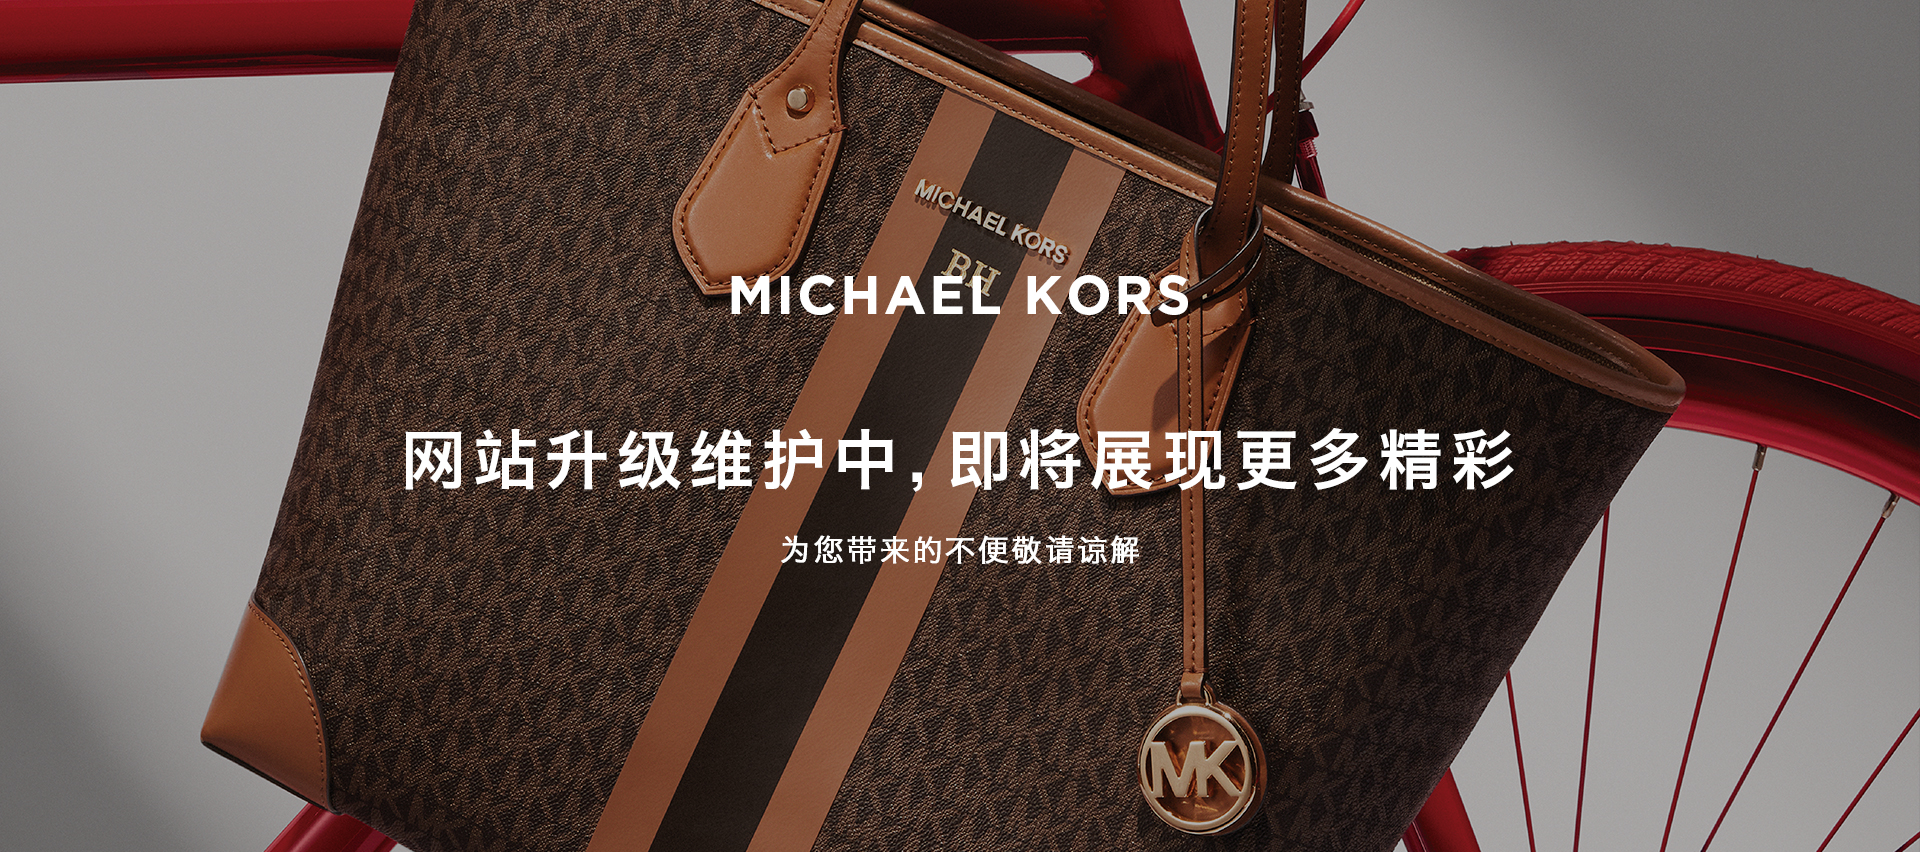 Destination Kors